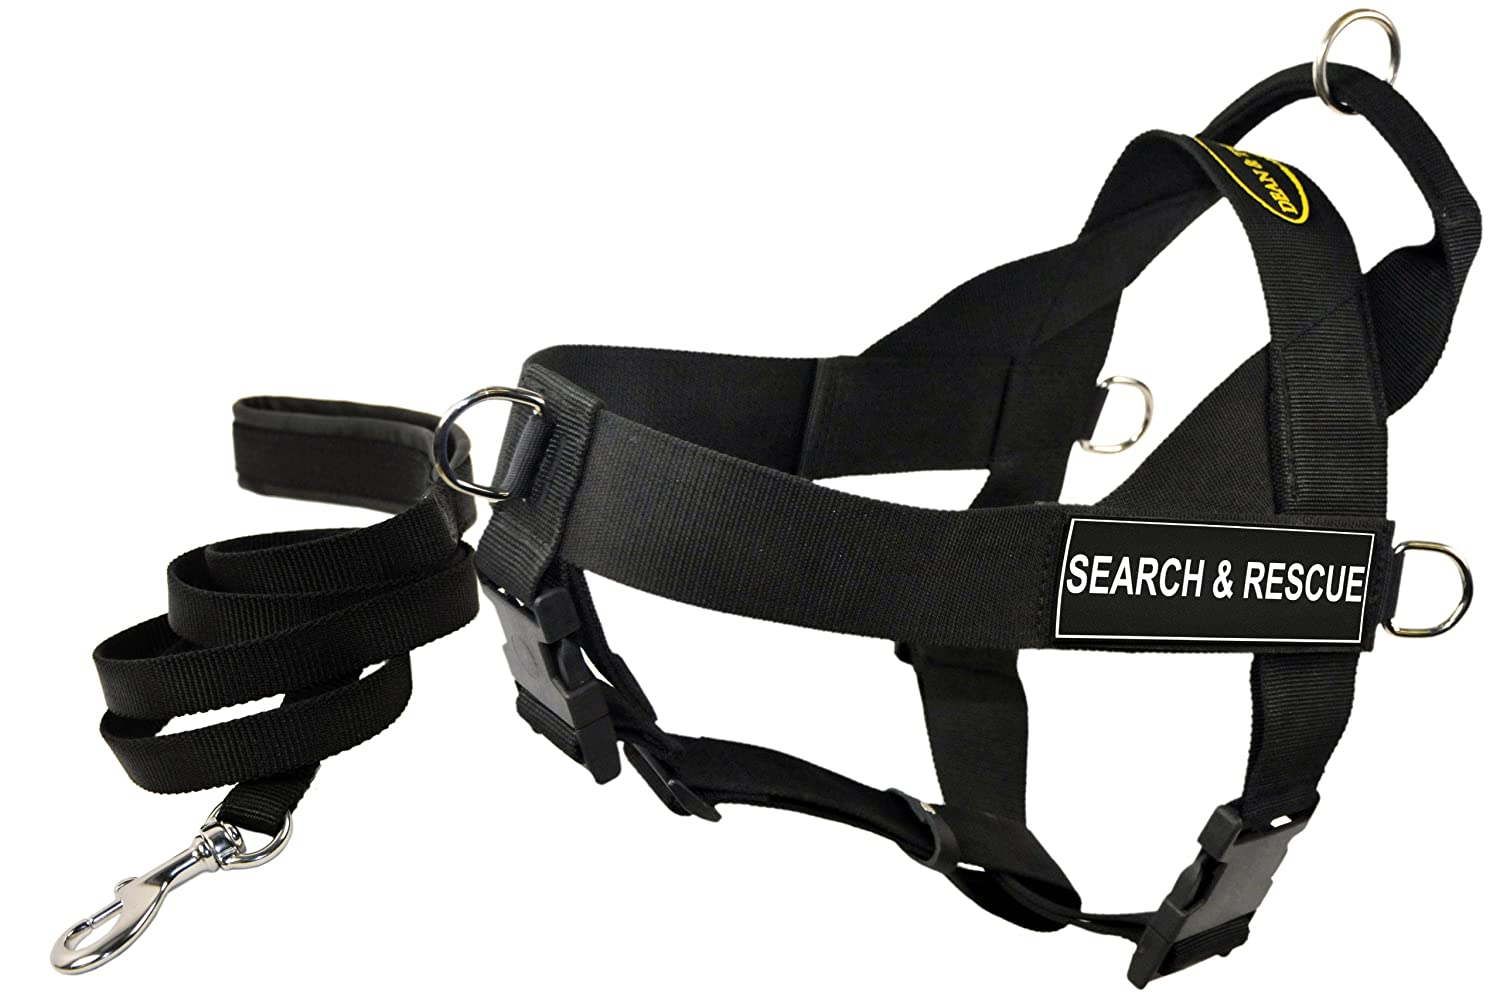 Dean and Tyler Bundle One DT Universal Harness, Search and Rescue, Small (24, 27) + One Padded Puppy Leash, 6-Feet Stainless Steel Snap, Black